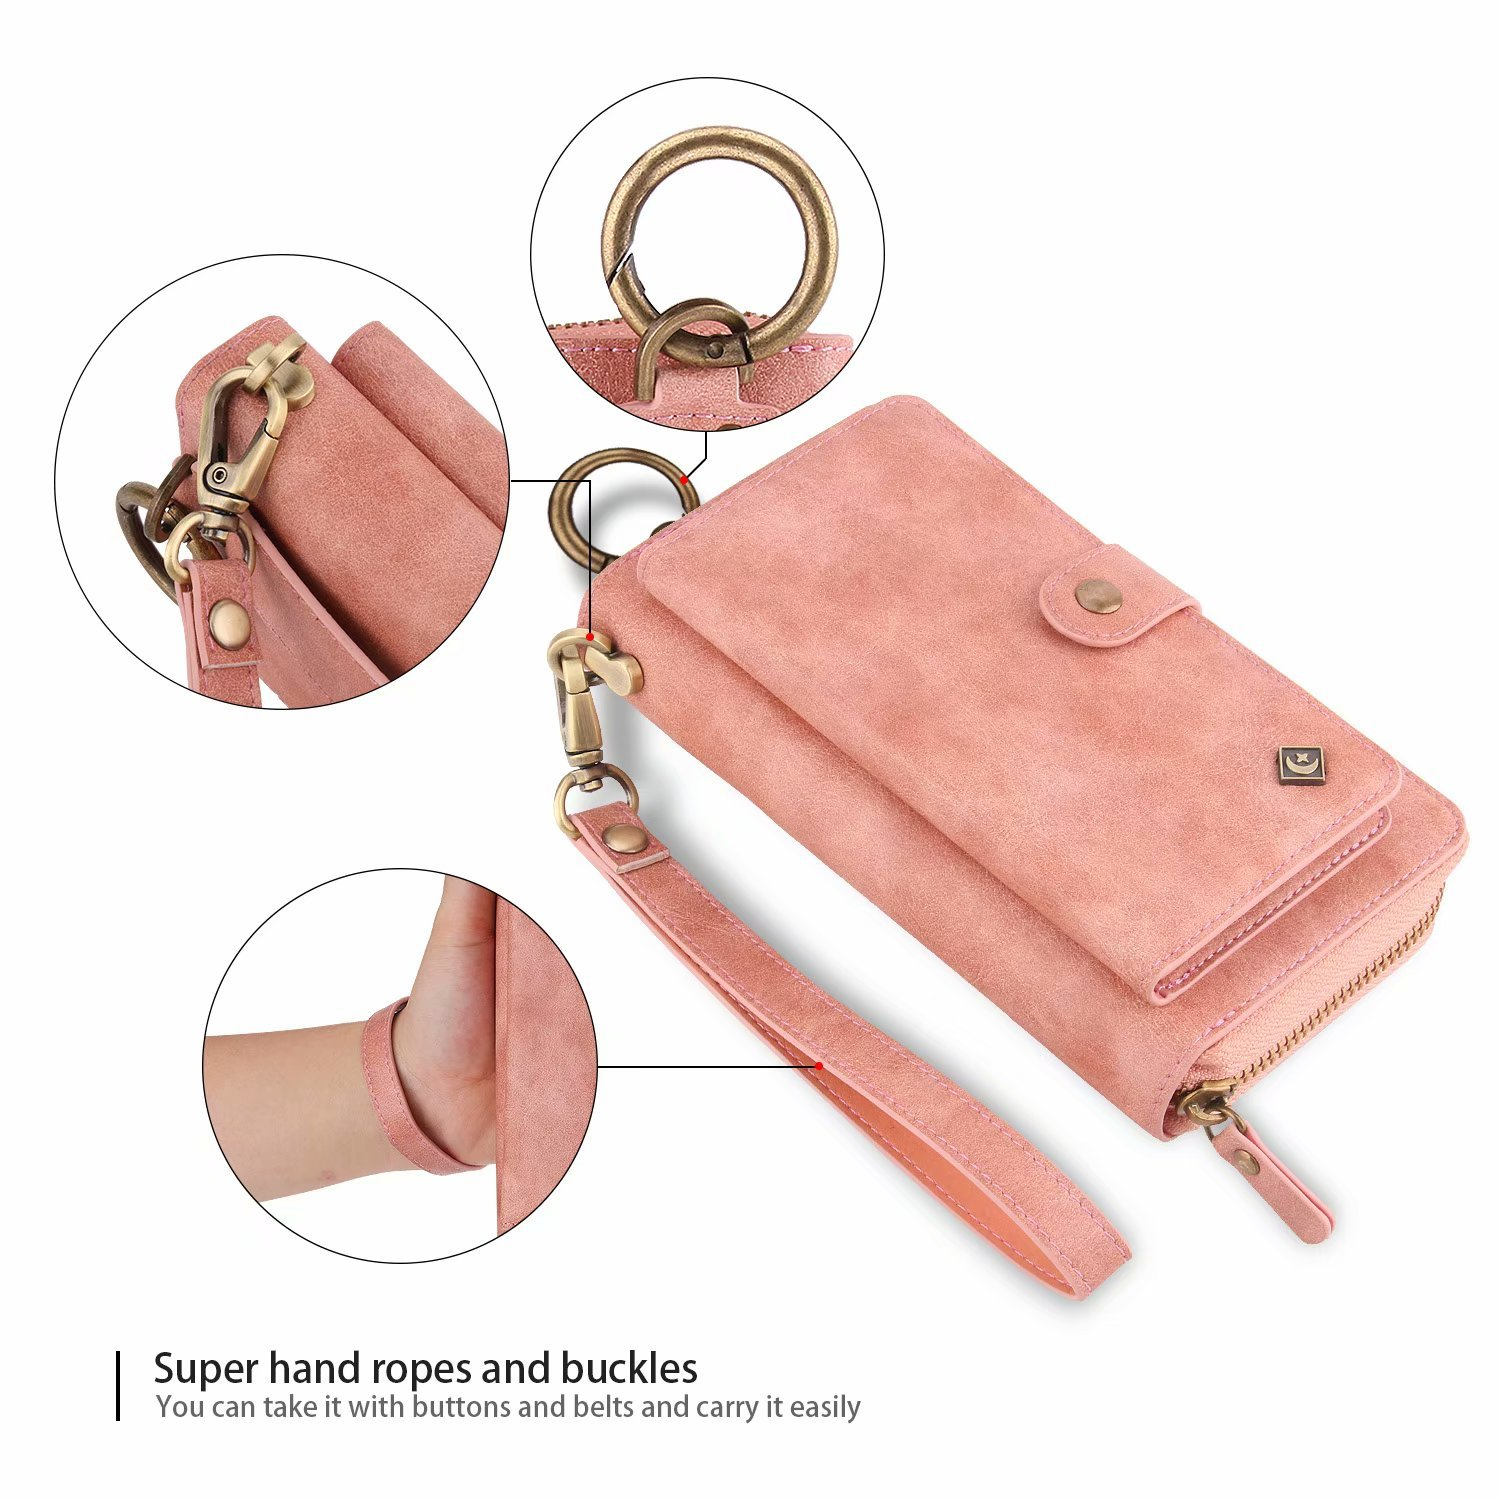 Galaxy S9 Plus Wallet Phone Case,GX-LV Samsung Galaxy S9 Plus Wallet Case Leather Case Cover Zipper Pouch with 14 Card Holder,Magnetic Detachable Case For Samsung Galaxy S9 Plus (Pink) by GX-LV (Image #5)